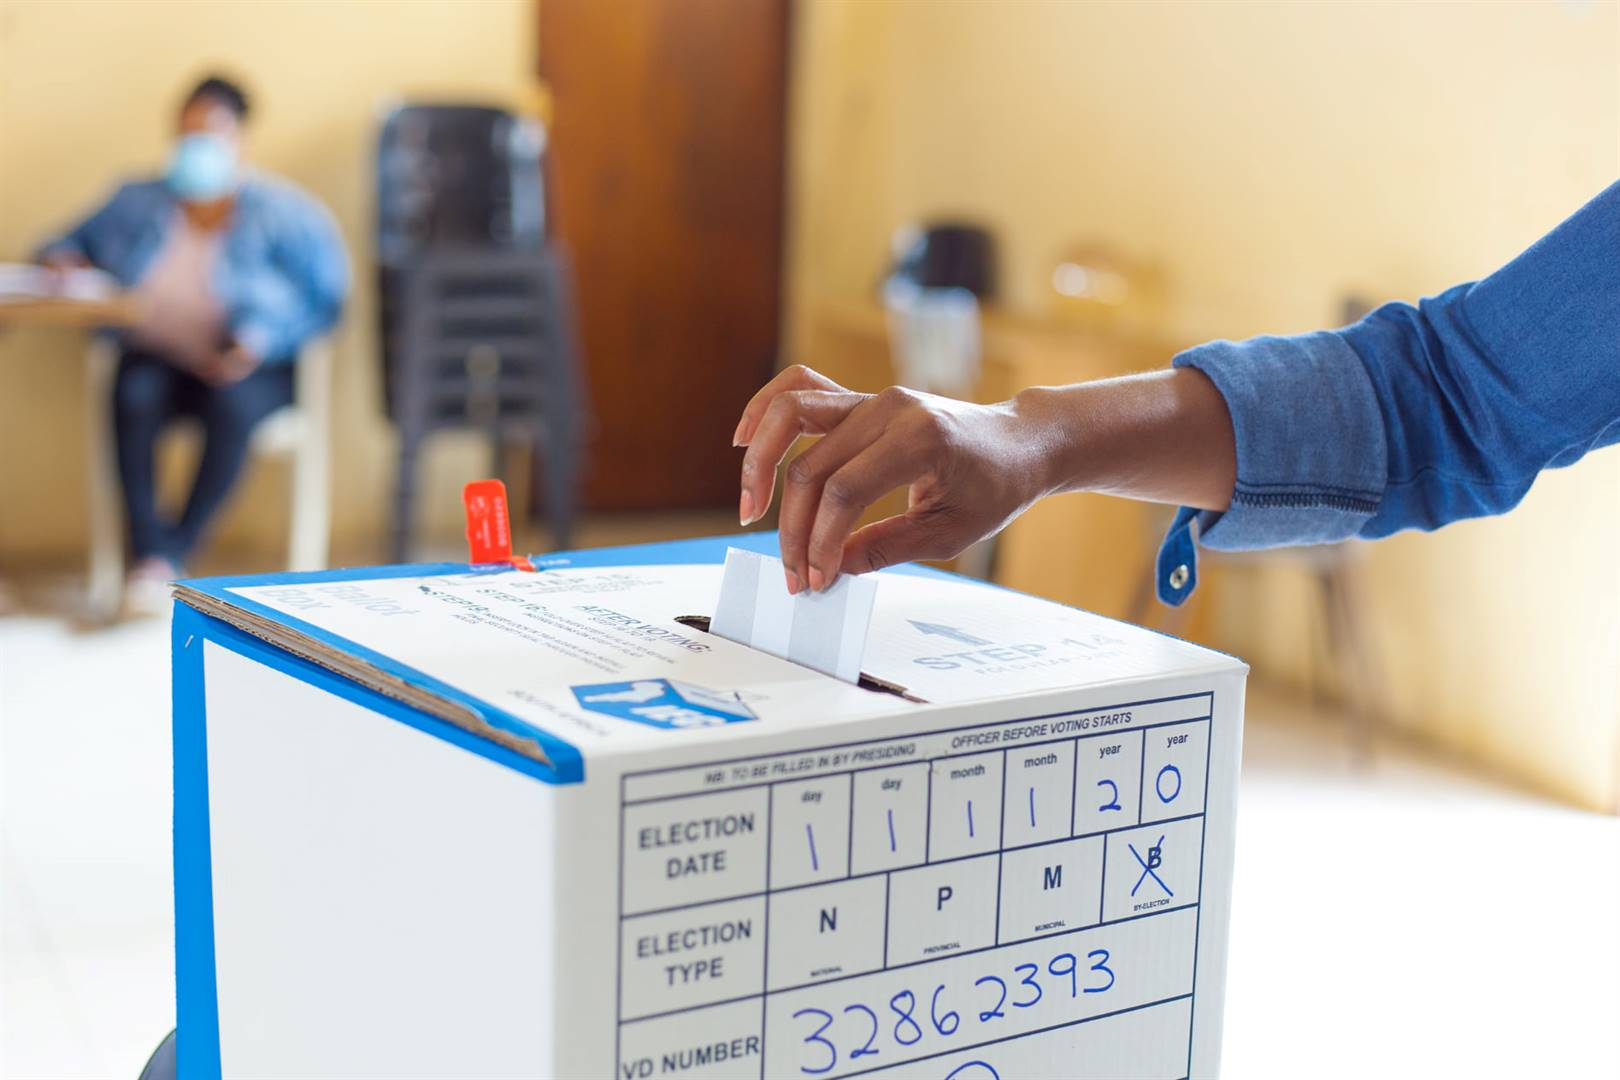 The Electoral Commission of South Africa (IEC) is a world-class elections body that has administered elections in South Africa since 1994.